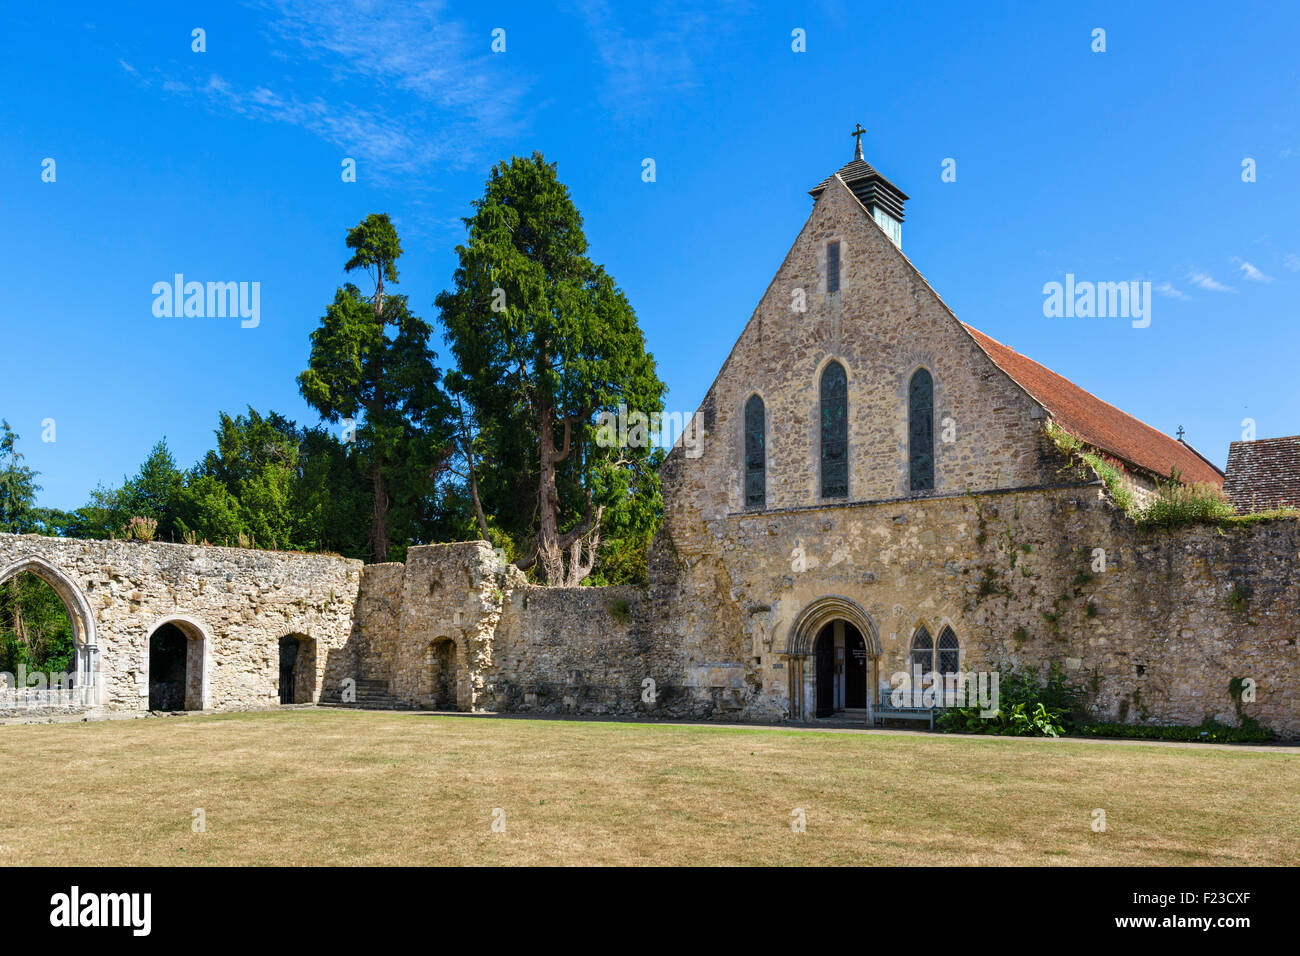 The cloister and refectory (now the parish church), Beaulieu Abbey, Beaulieu, Hampshire, England, UK - Stock Image